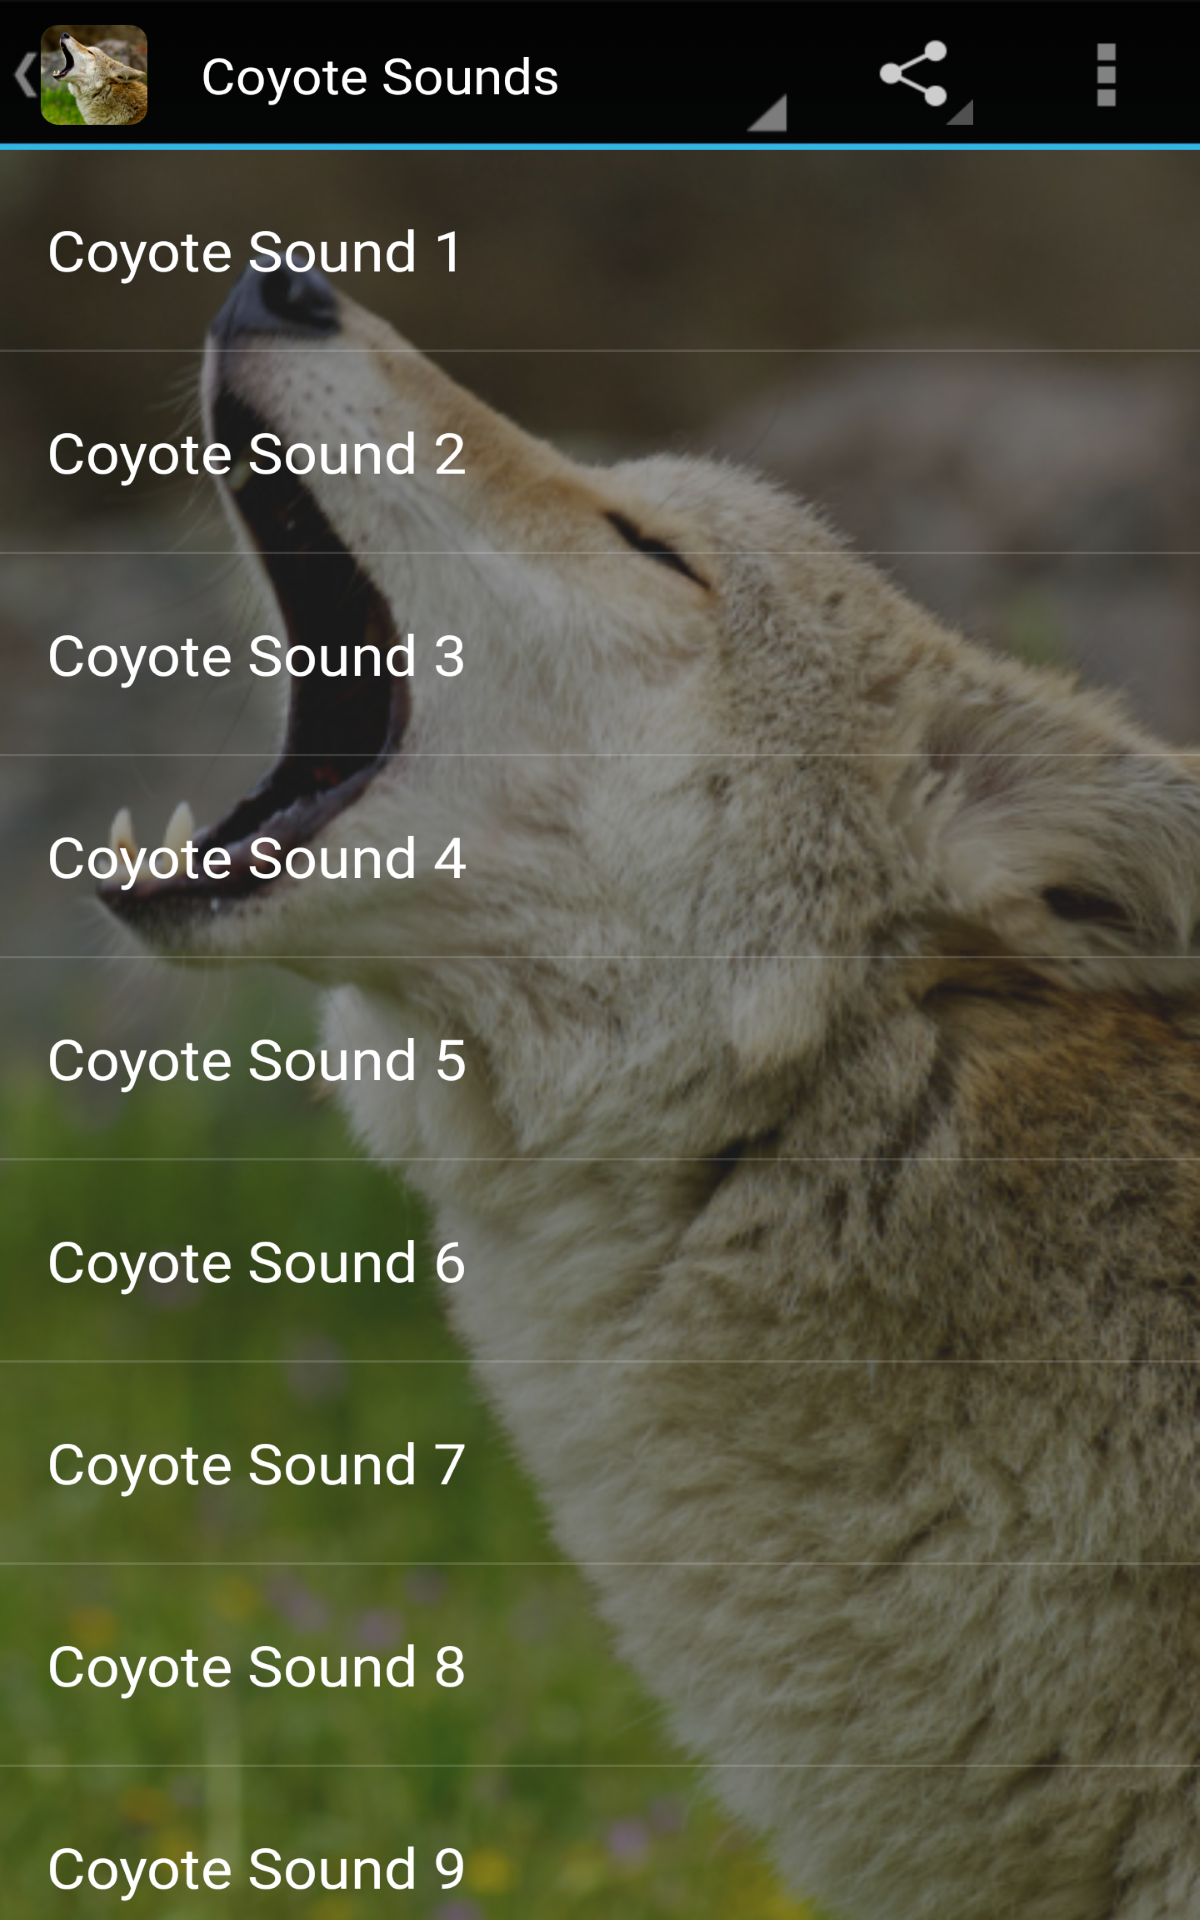 Amazon.com: Coyote Sounds: Appstore for Android